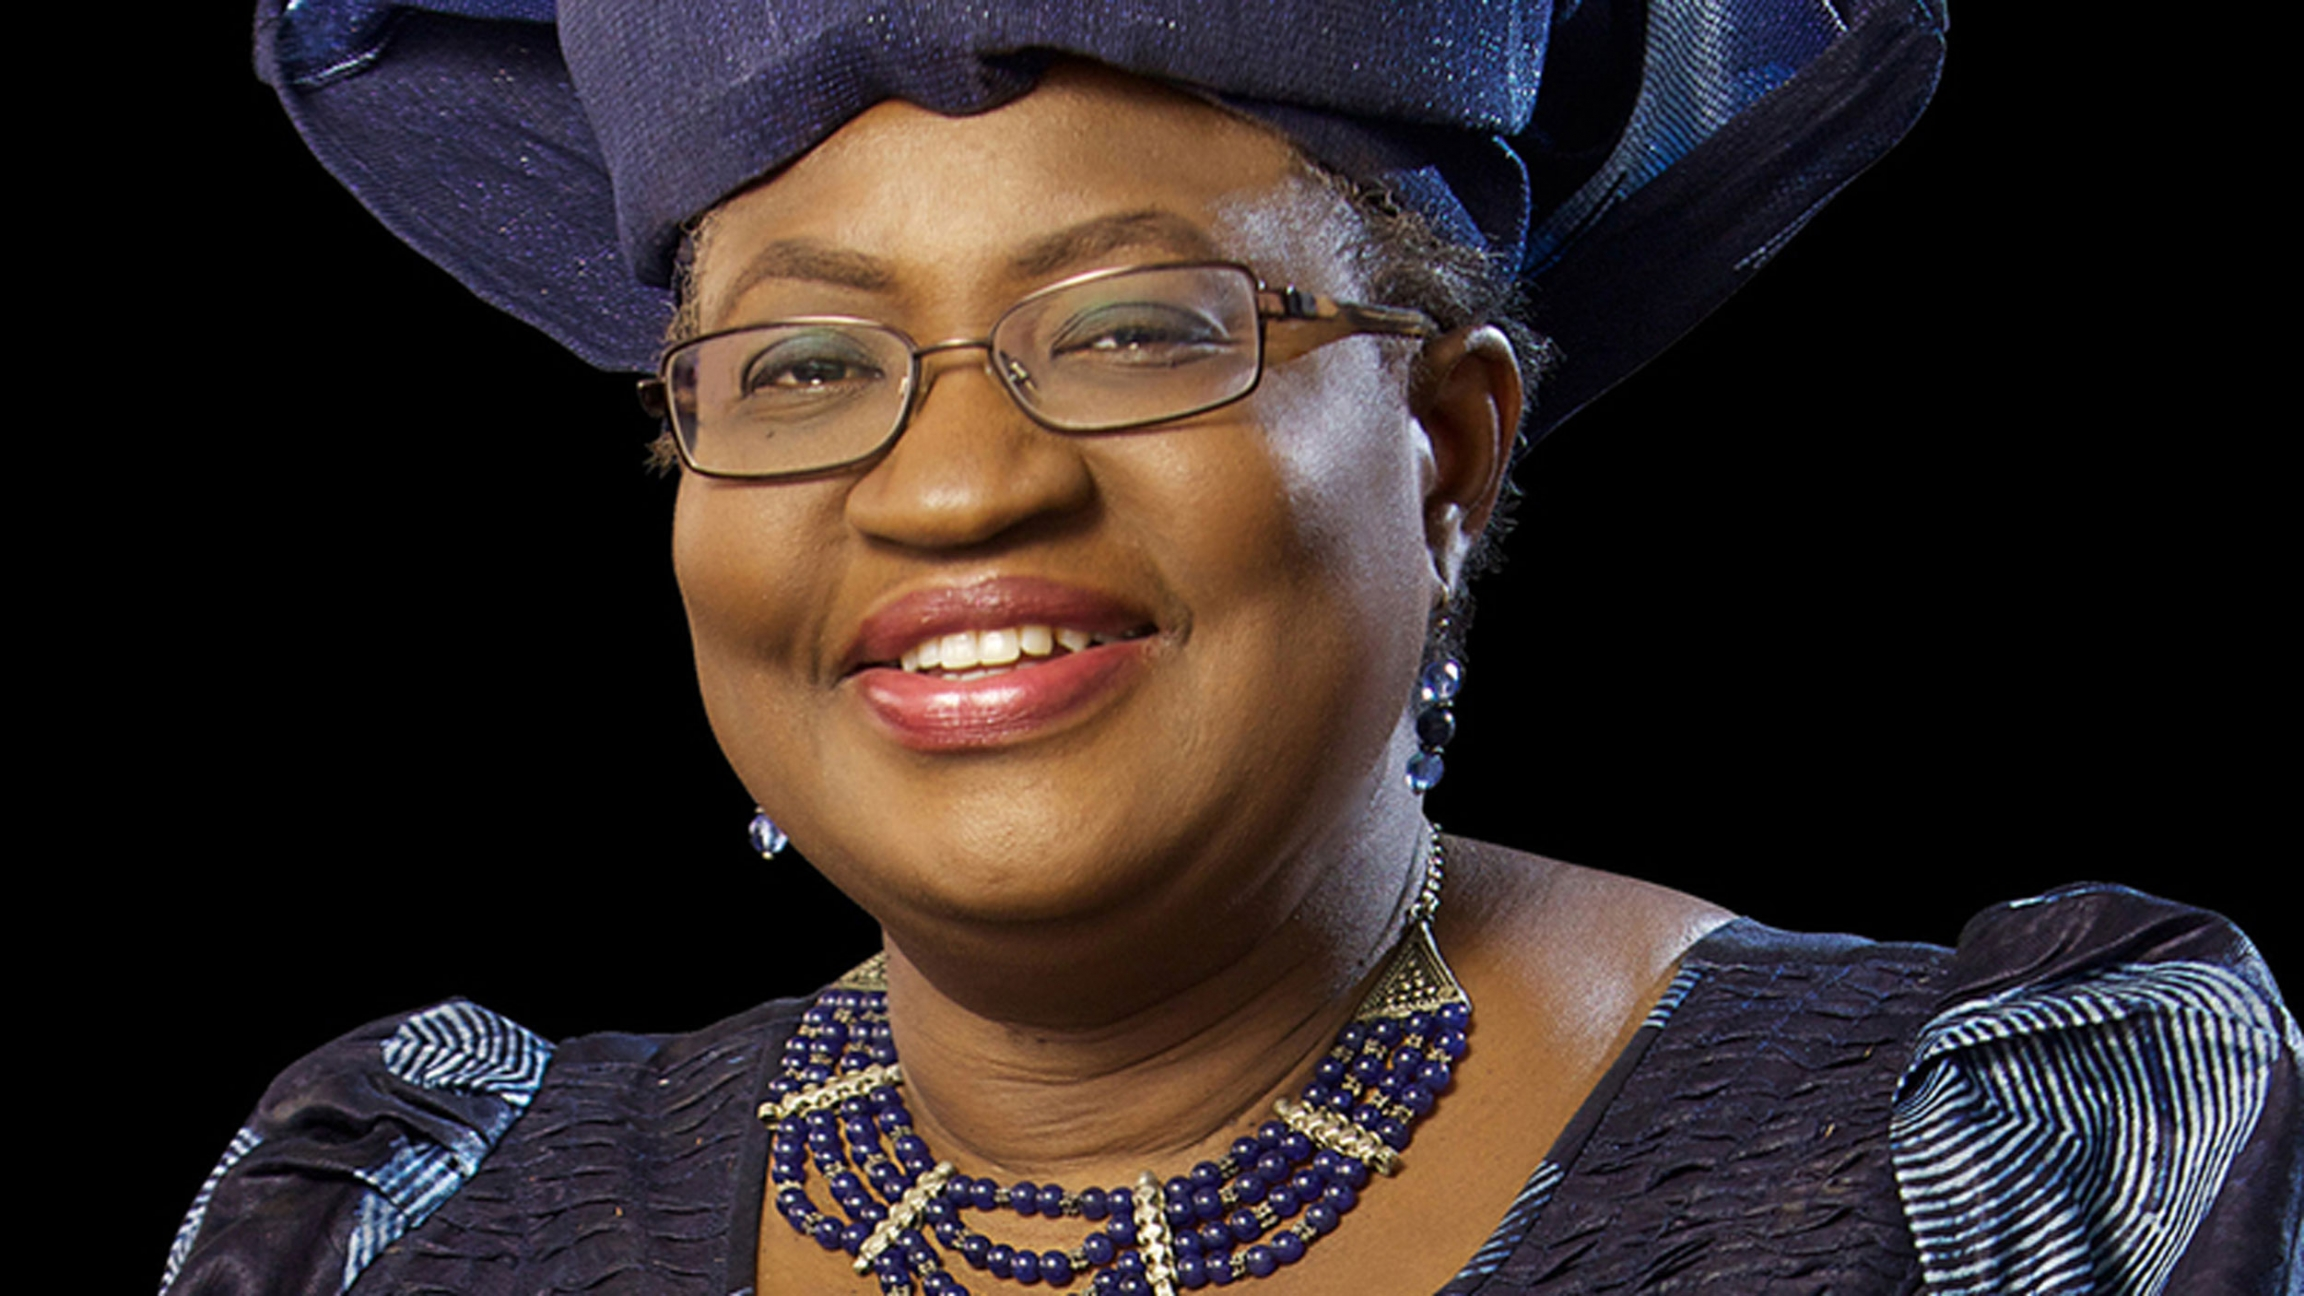 Author Ngozi Okonjo-Iweala poses for the camera in a dark blue outfit